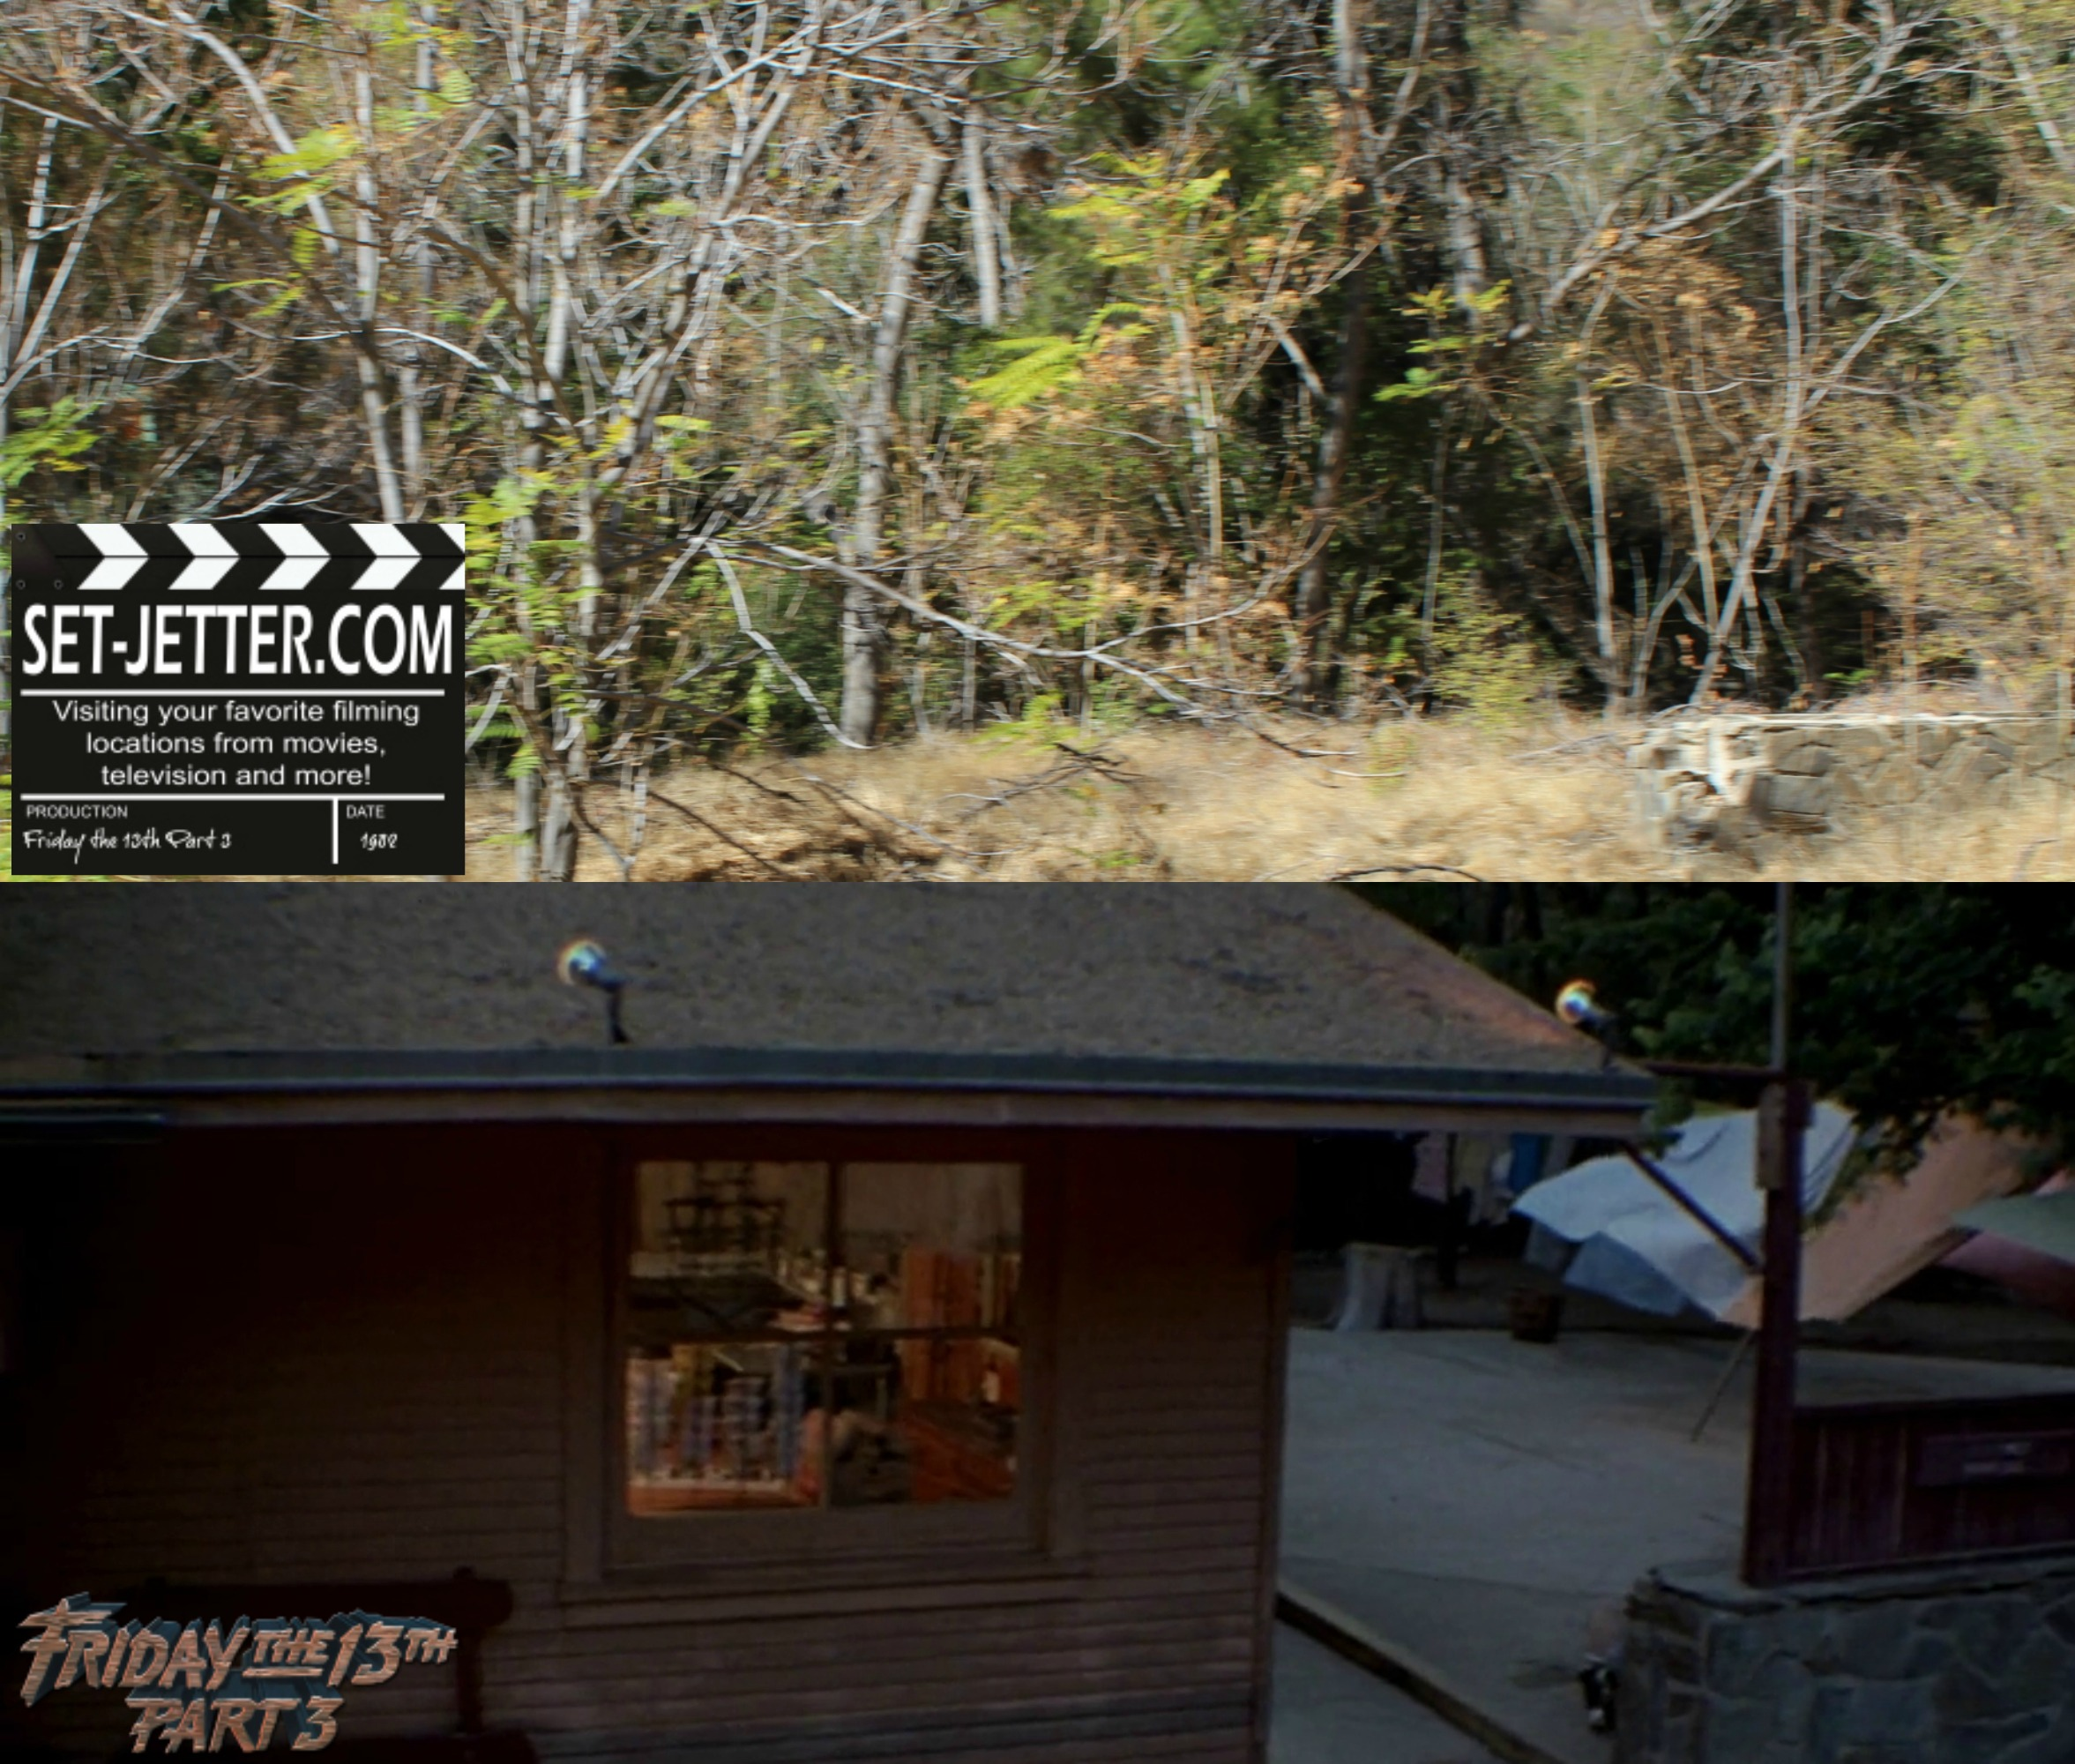 Friday the 13th Part 3 comparison 203.jpg